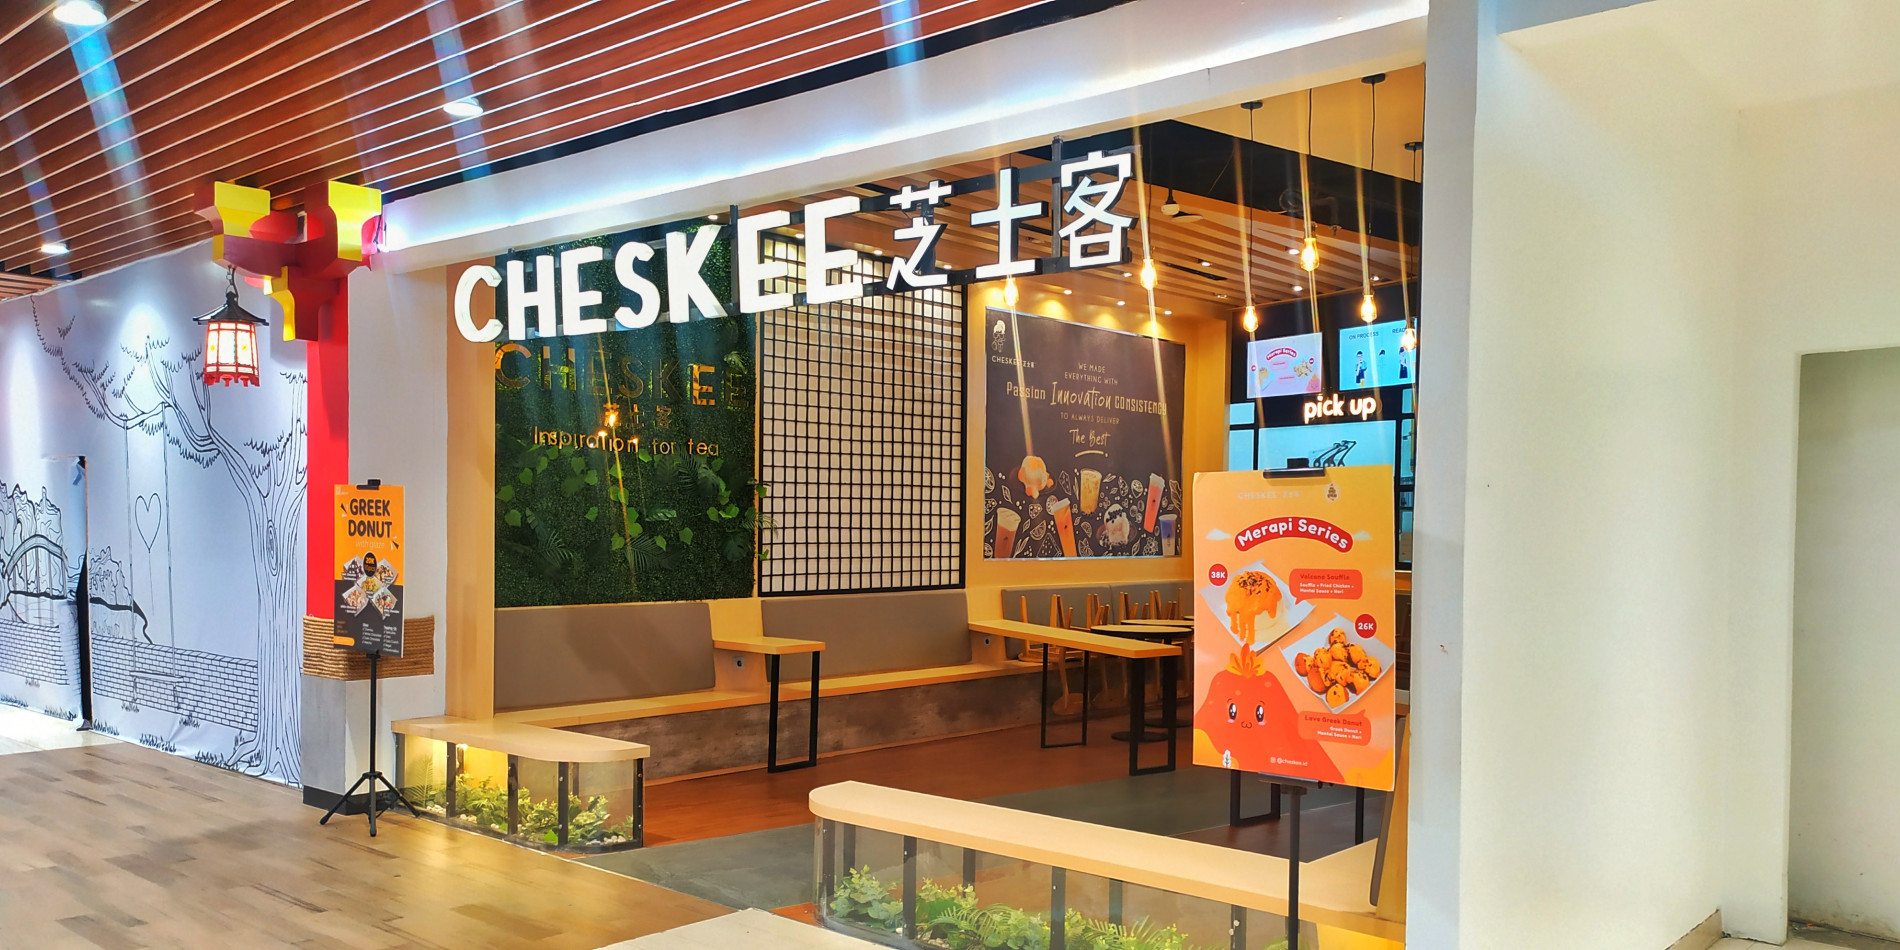 Cheskee